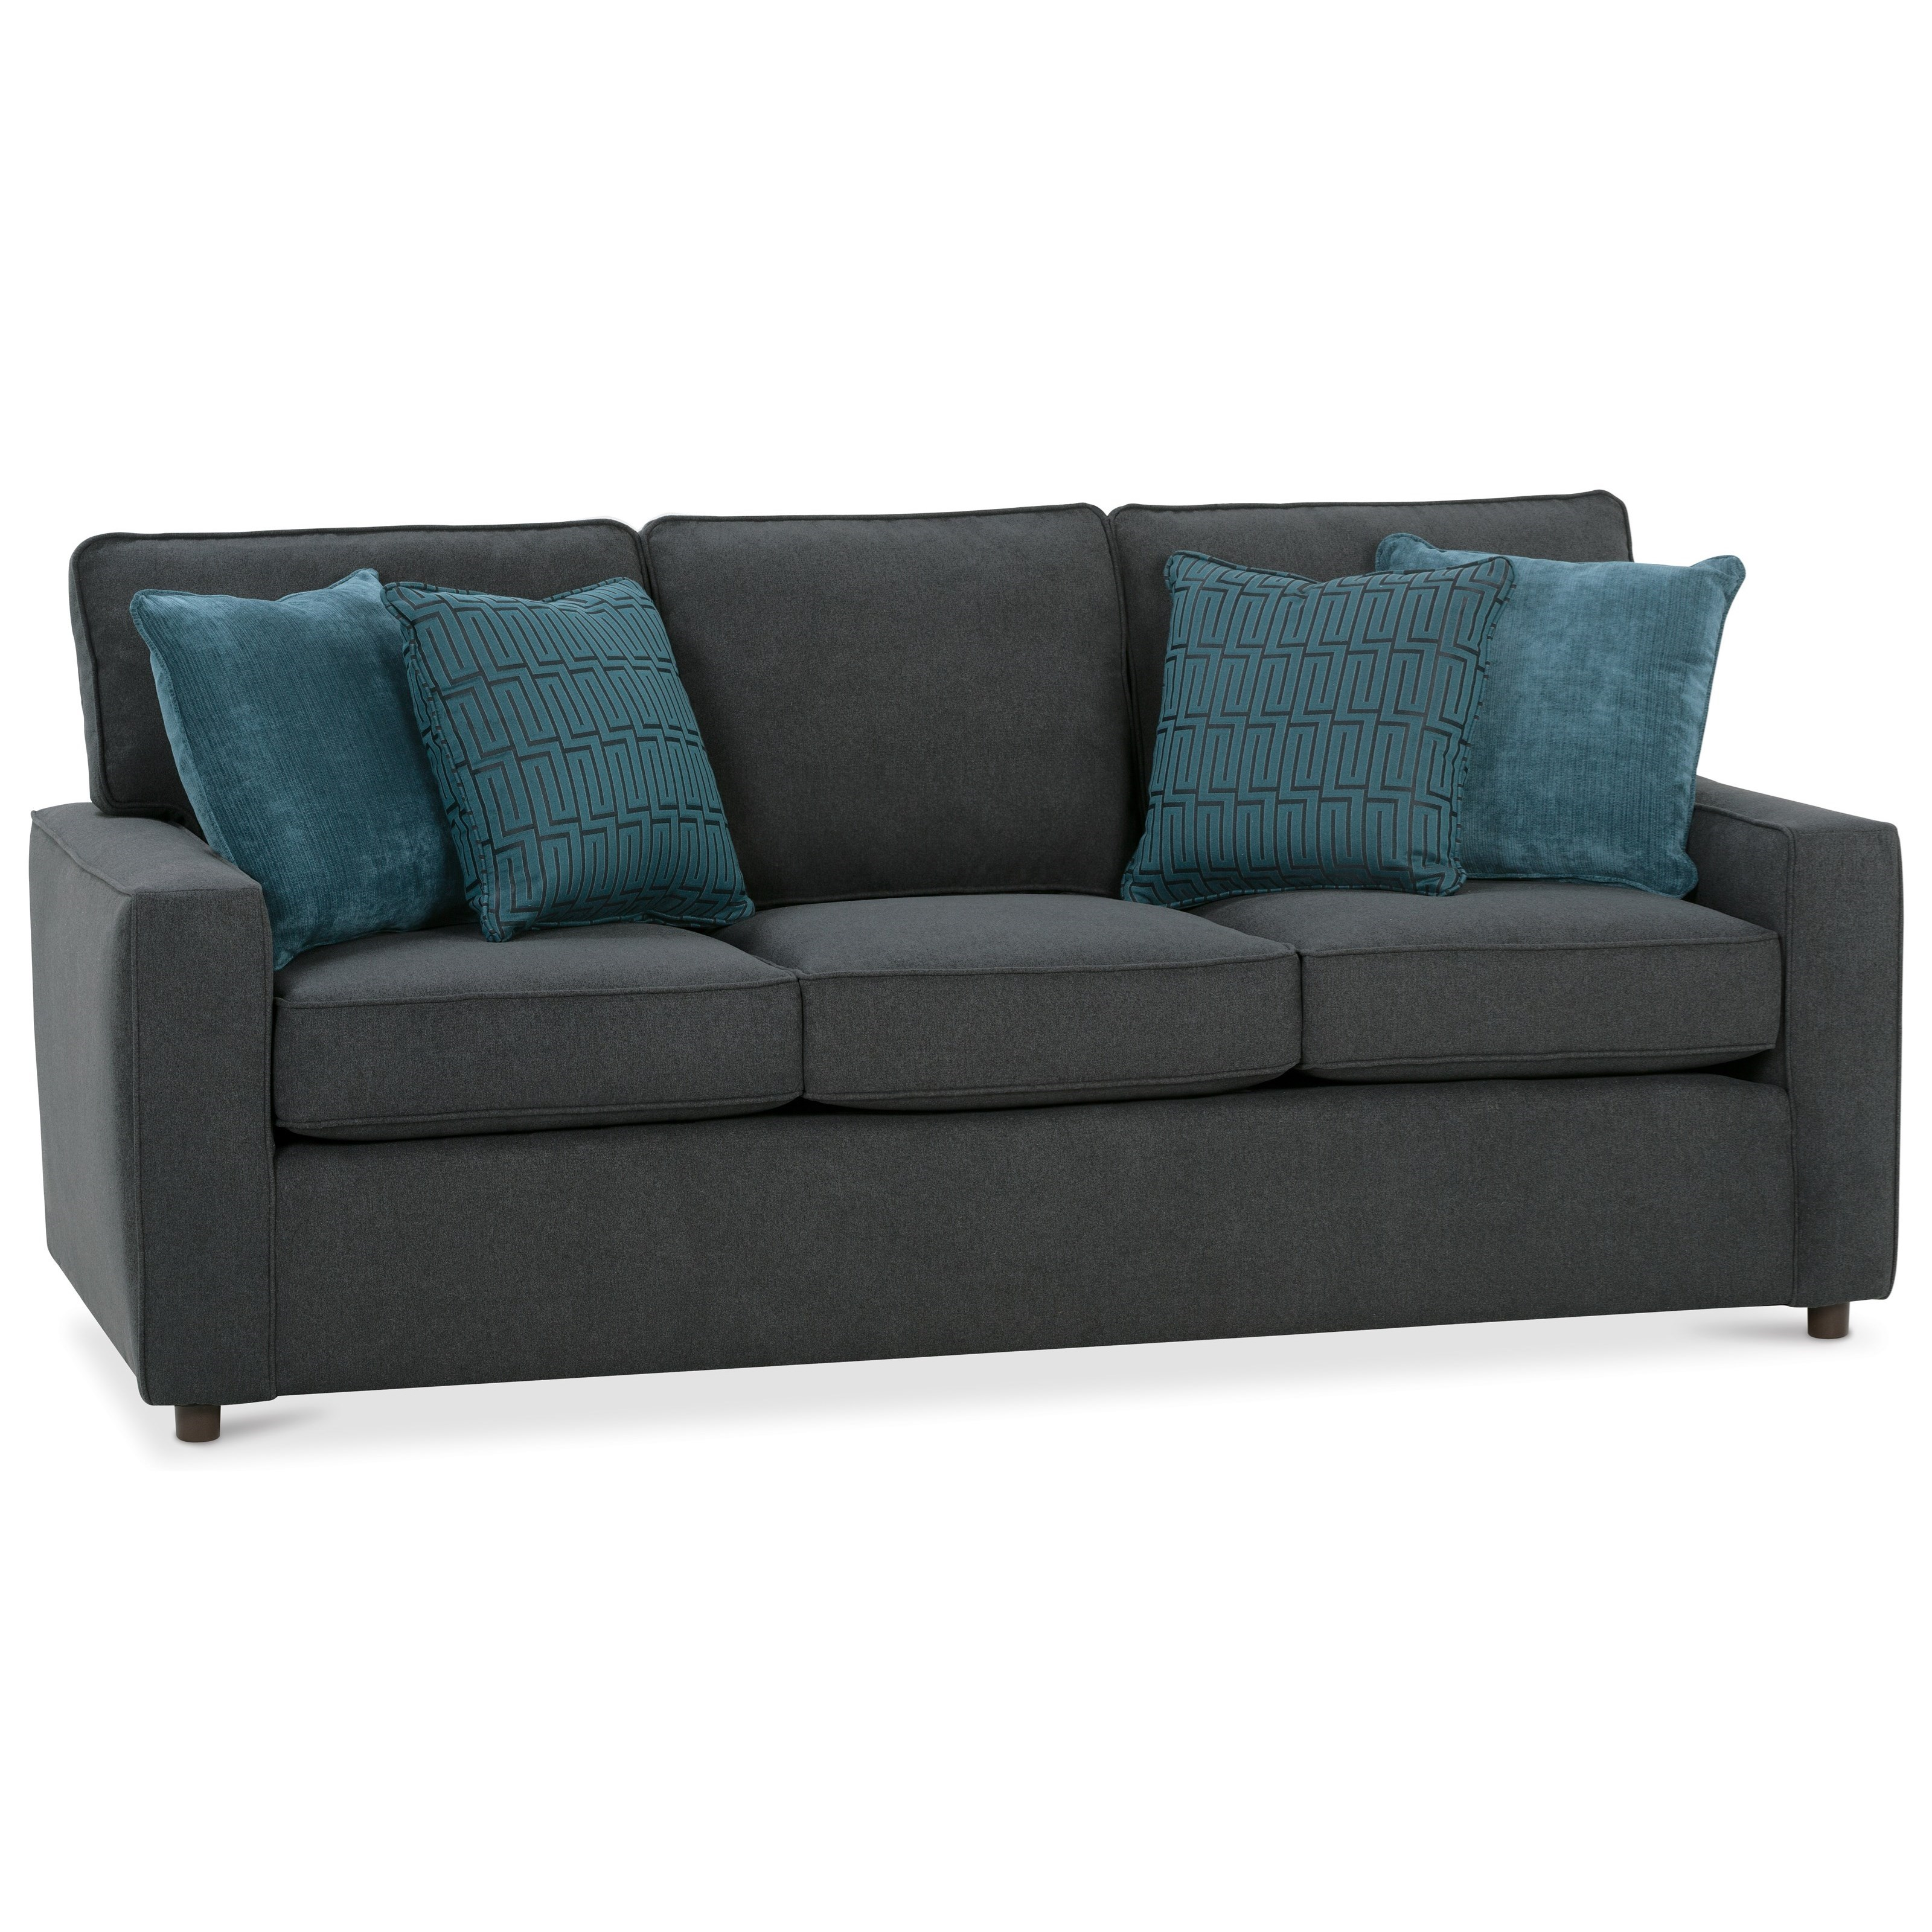 Monaco Queen Sofa Sleeper by Rowe at Baer's Furniture